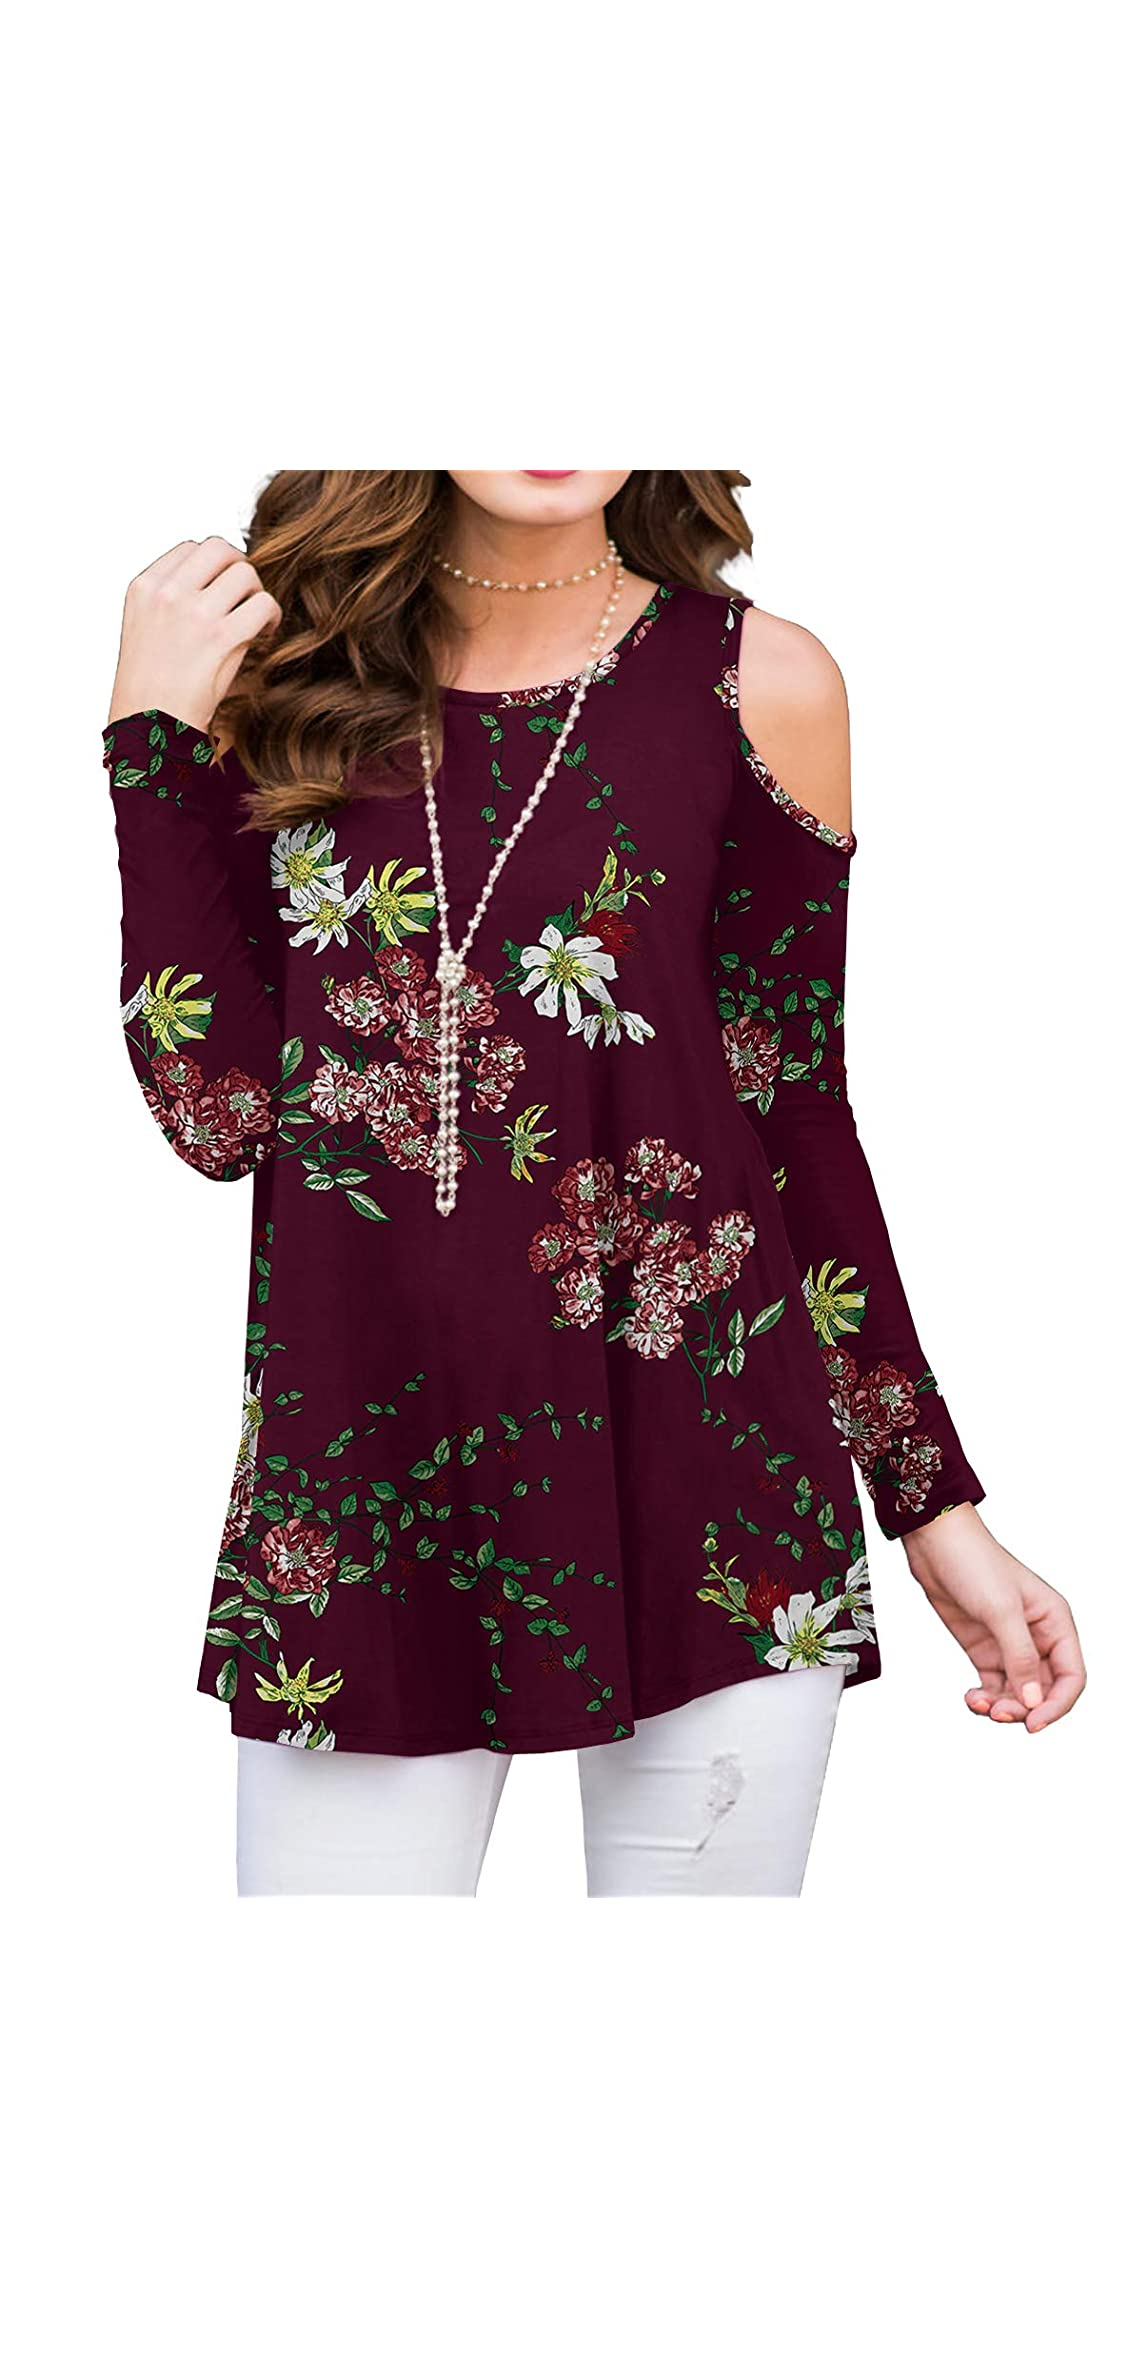 Women's Shorts Sleeve Casual Cold Shoulder Tunic Tops